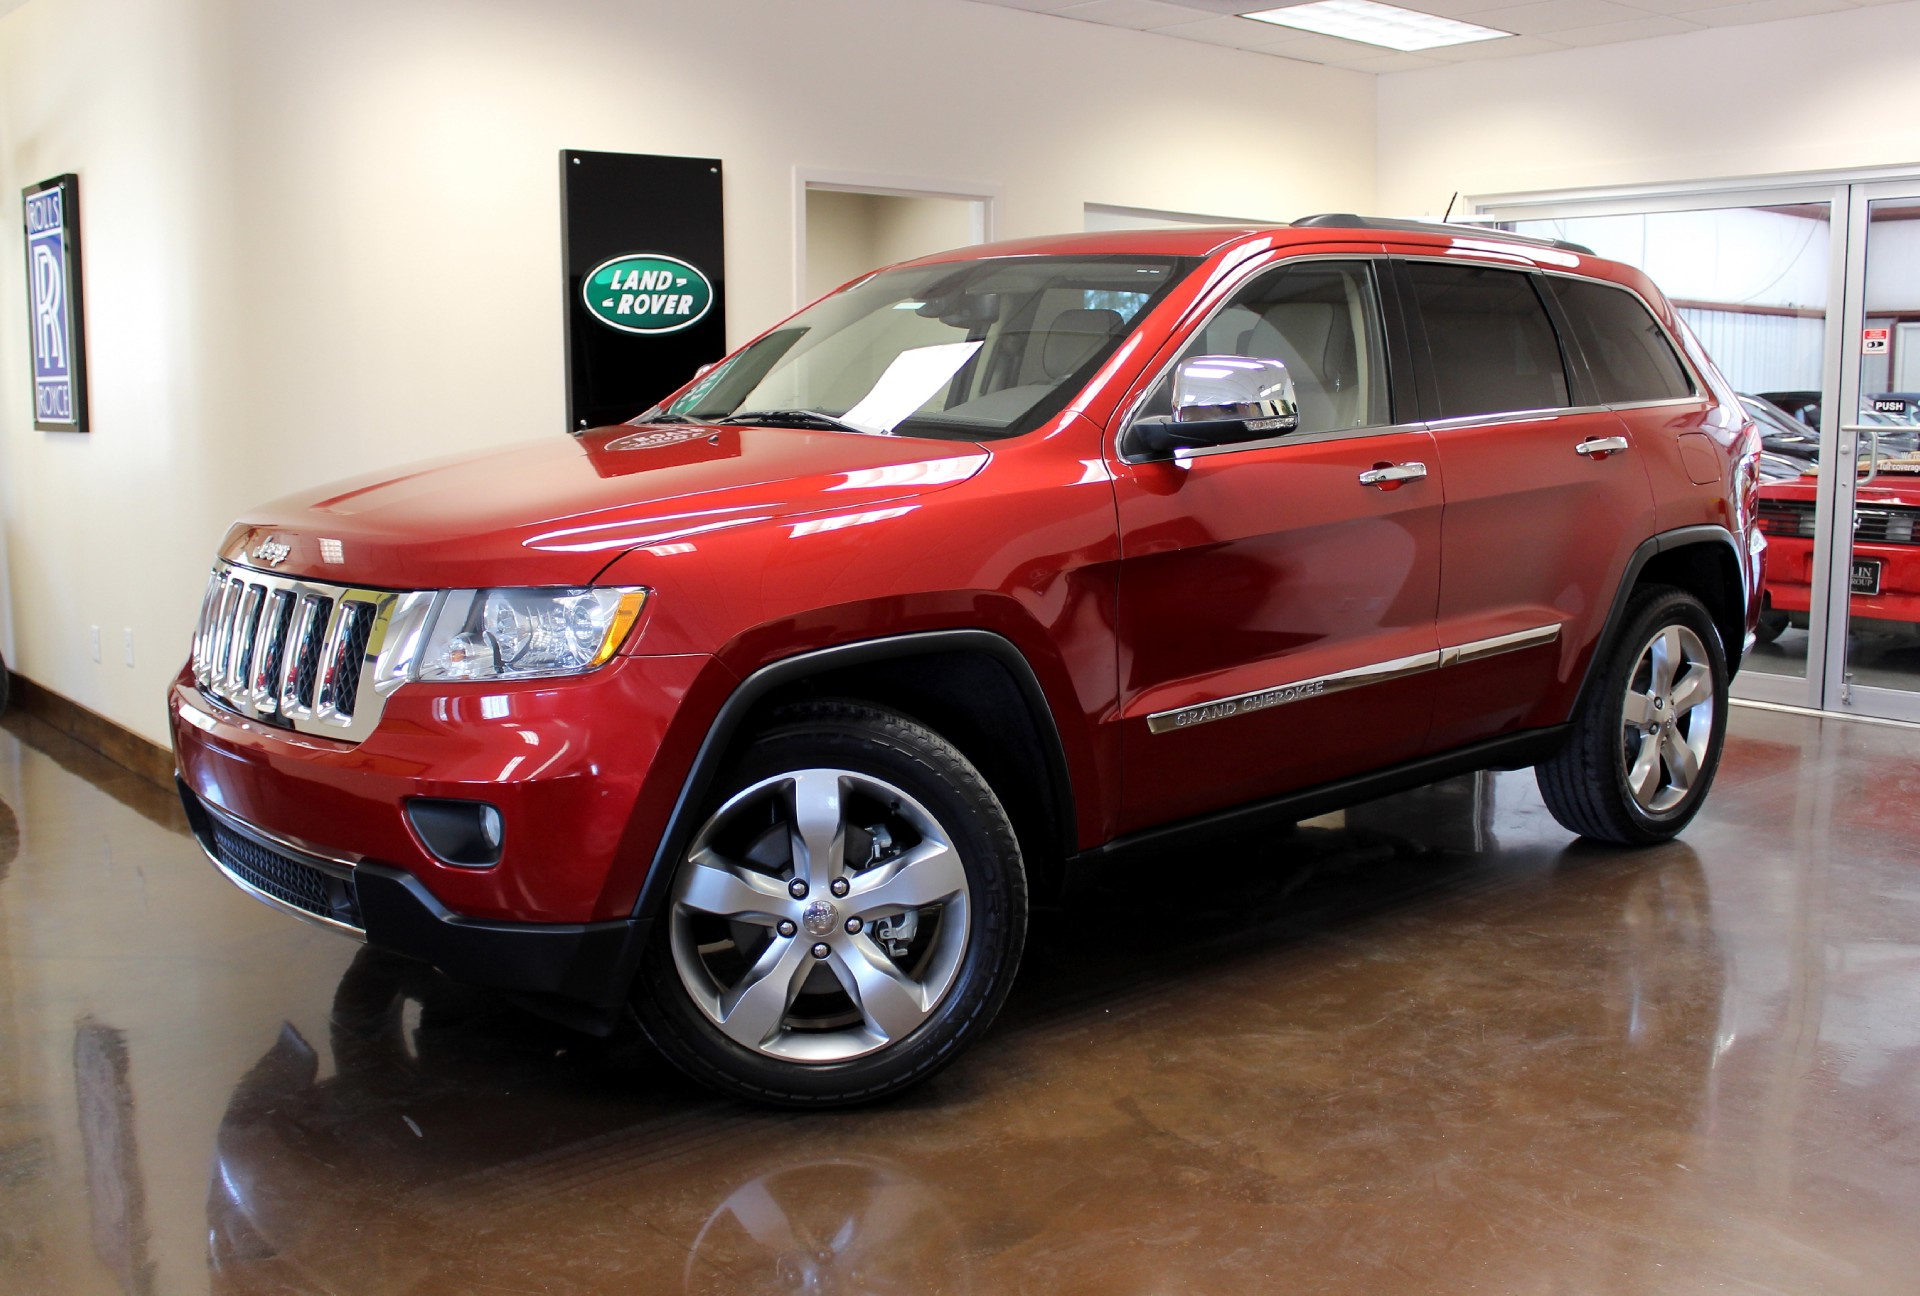 used 2011 jeep grand cherokee stock p2000 ultra luxury car from merlin auto group. Black Bedroom Furniture Sets. Home Design Ideas